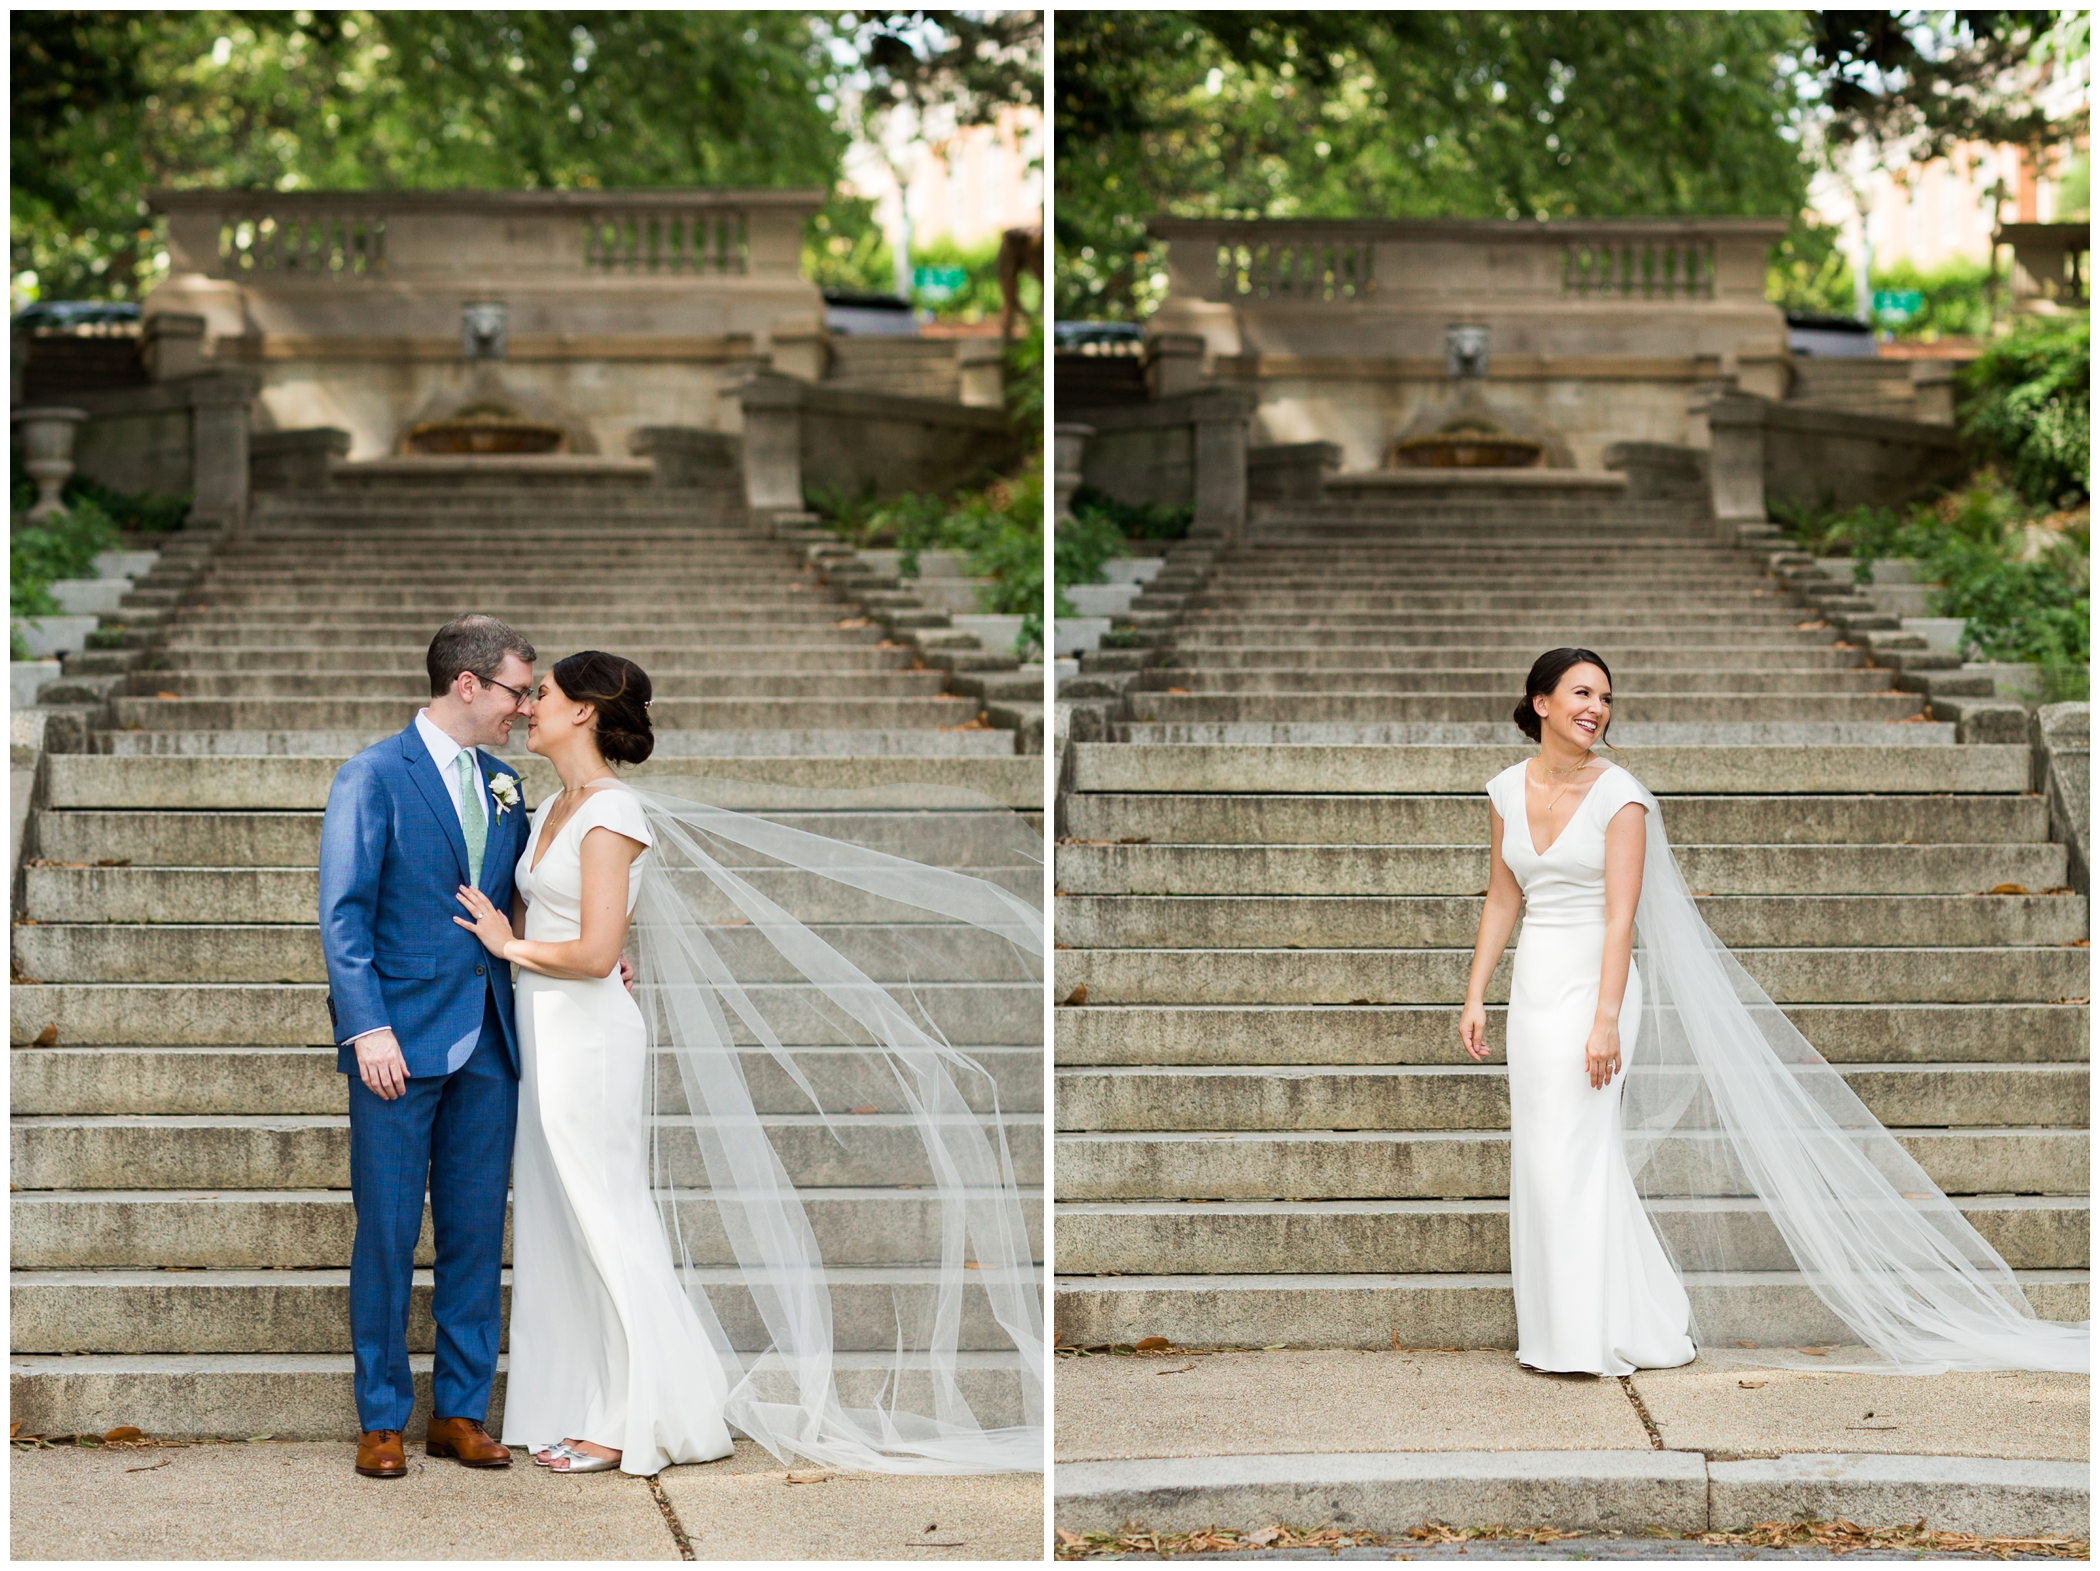 Summer Washington DC wedding at the Toolbox Pilates Art Studio and the Spanish Steps during DC Pride featuring Timber Pizza Co.